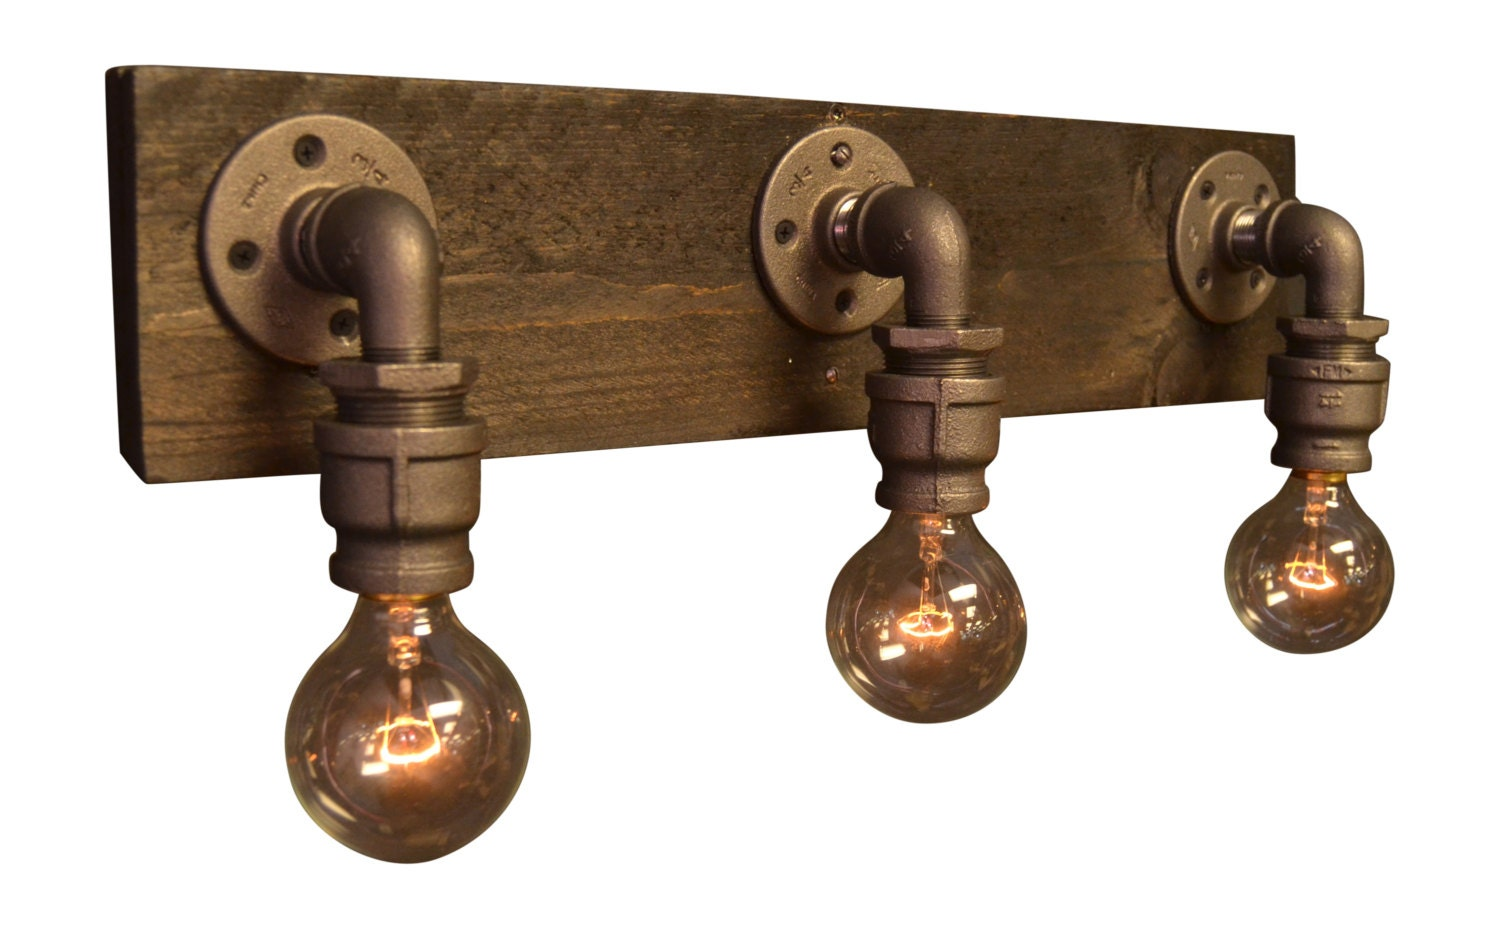 Antique Farmhouse Wall Sconces : Farmhouse light reclaimed wood industrial light